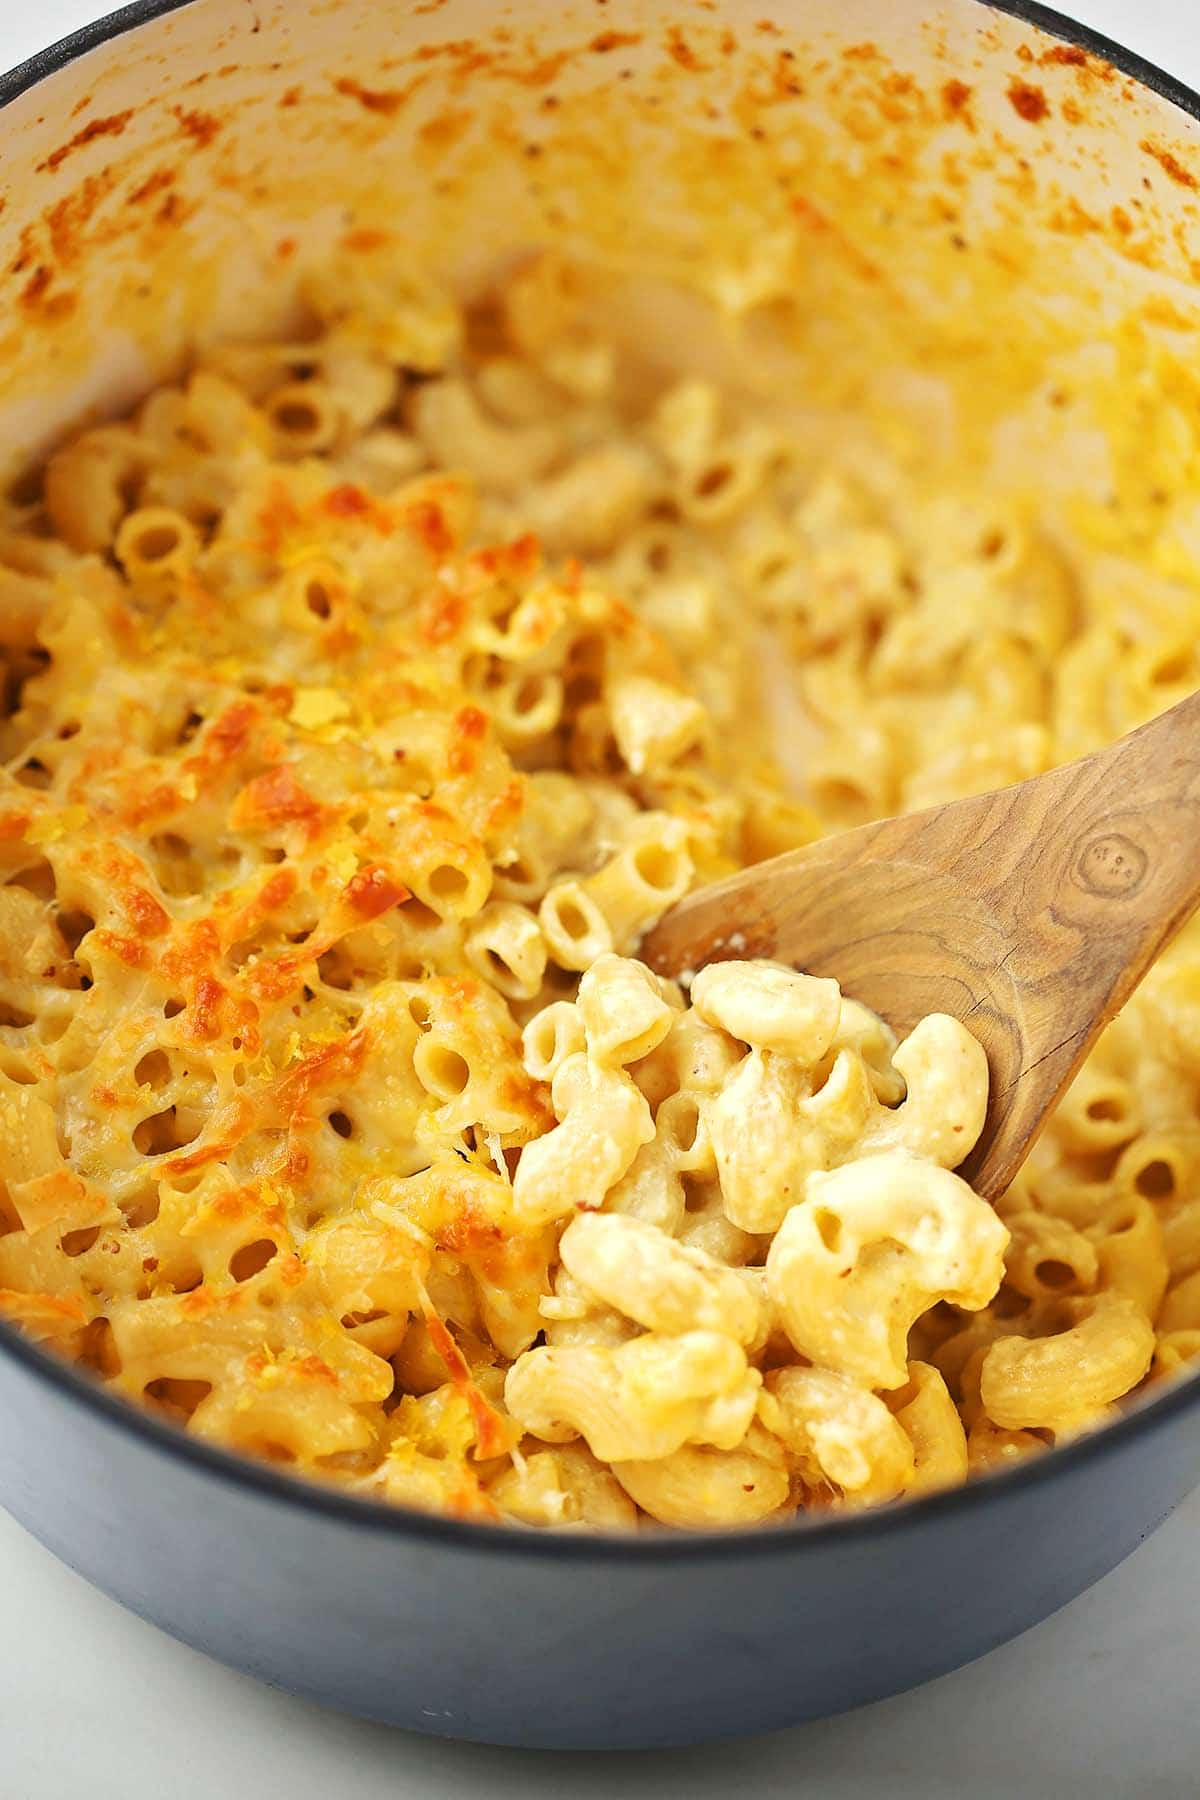 dutch oven with baked mac and cheese inside